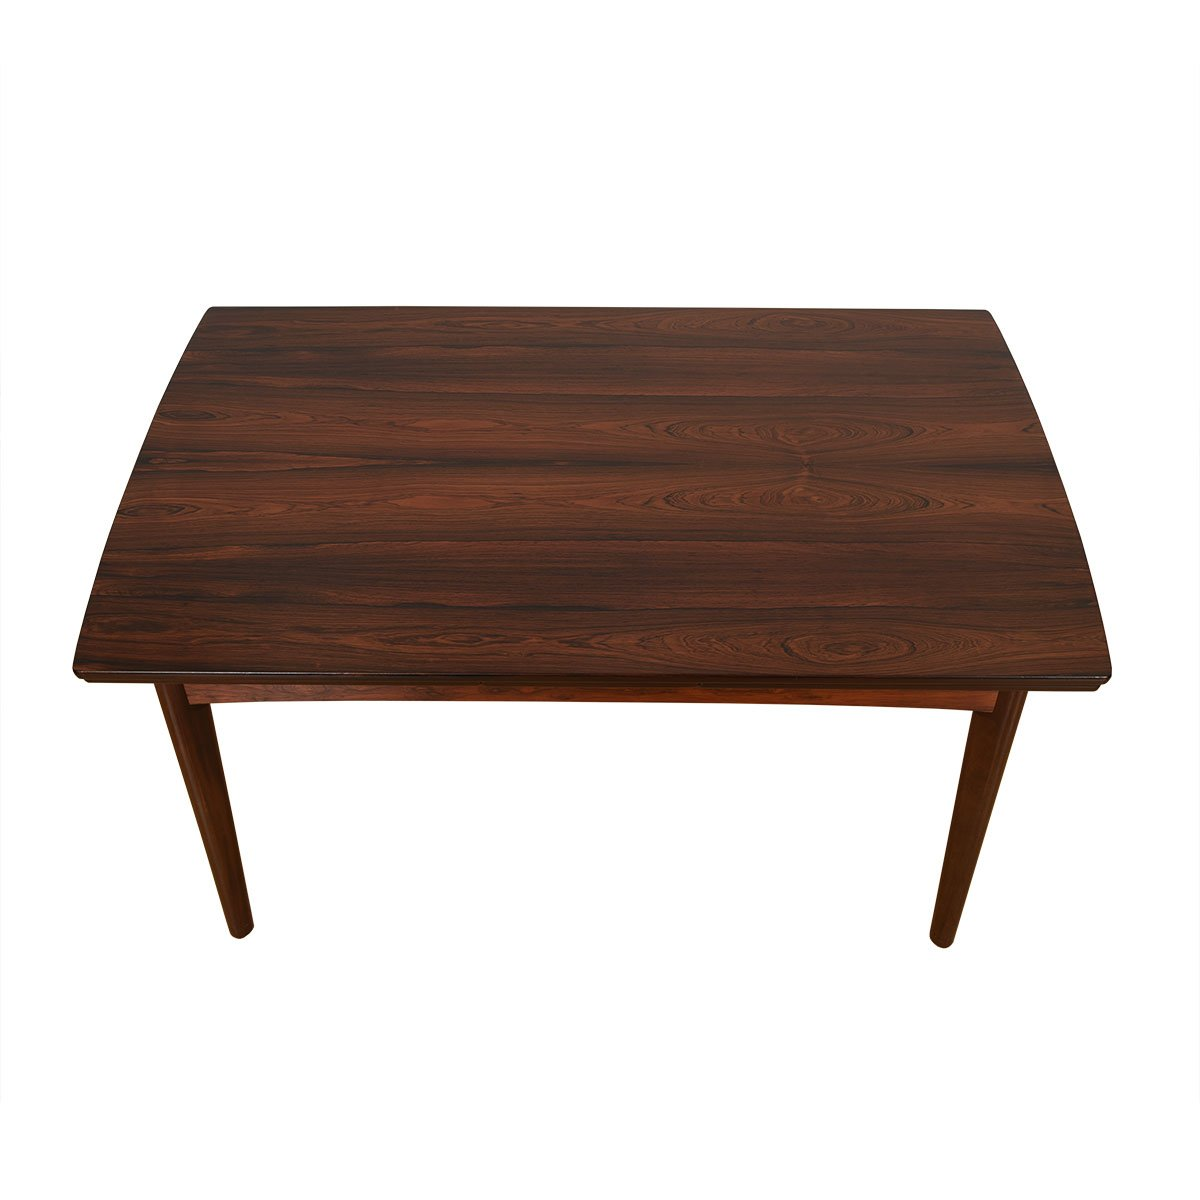 Danish Rosewood Concave Edge Expanding Dining Table